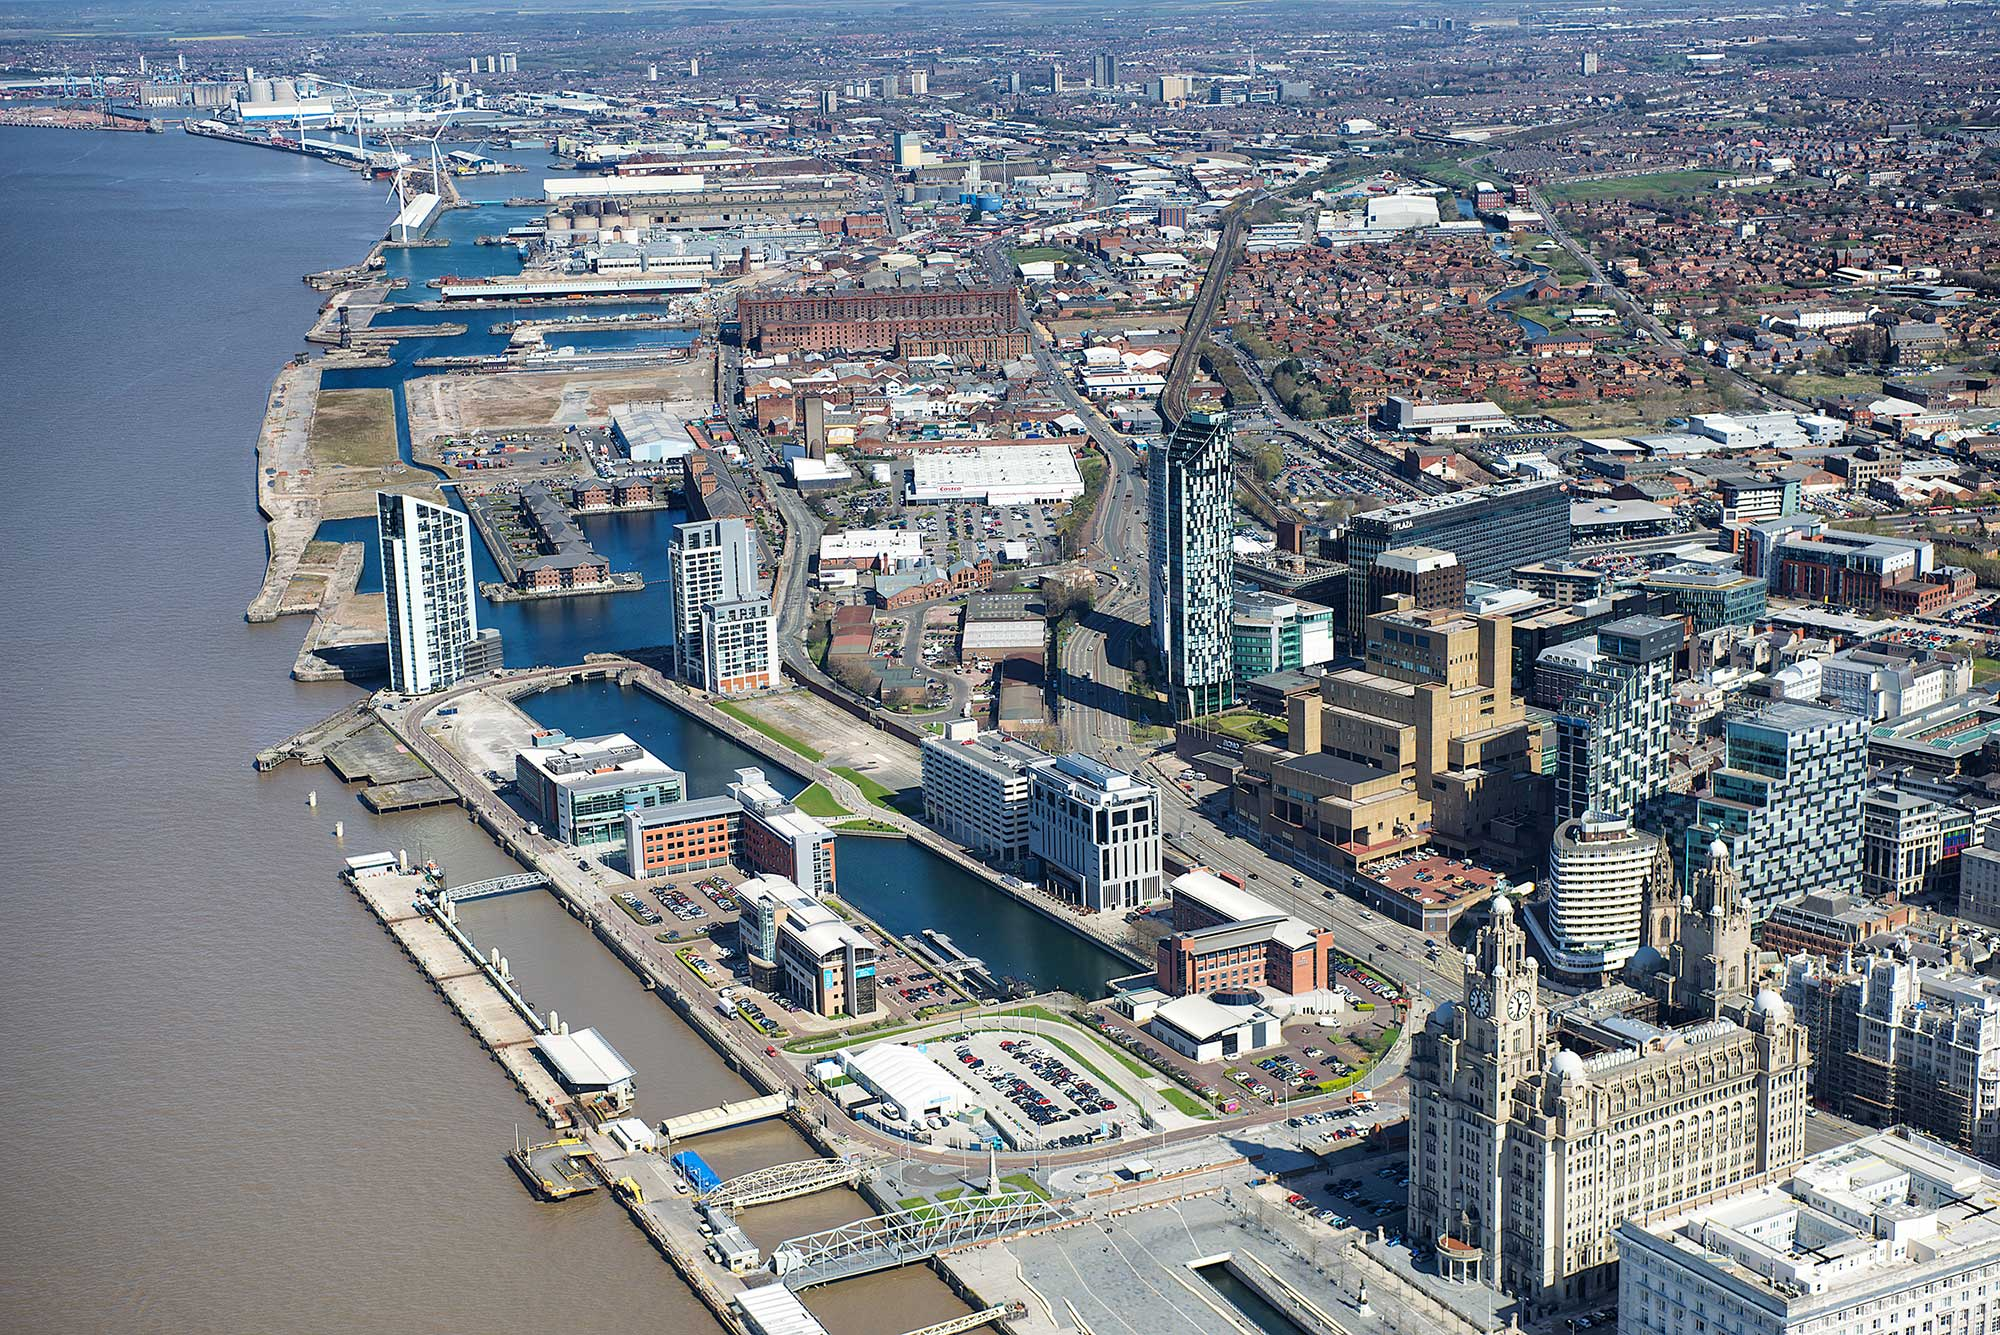 Ariel view of Liverpool waters